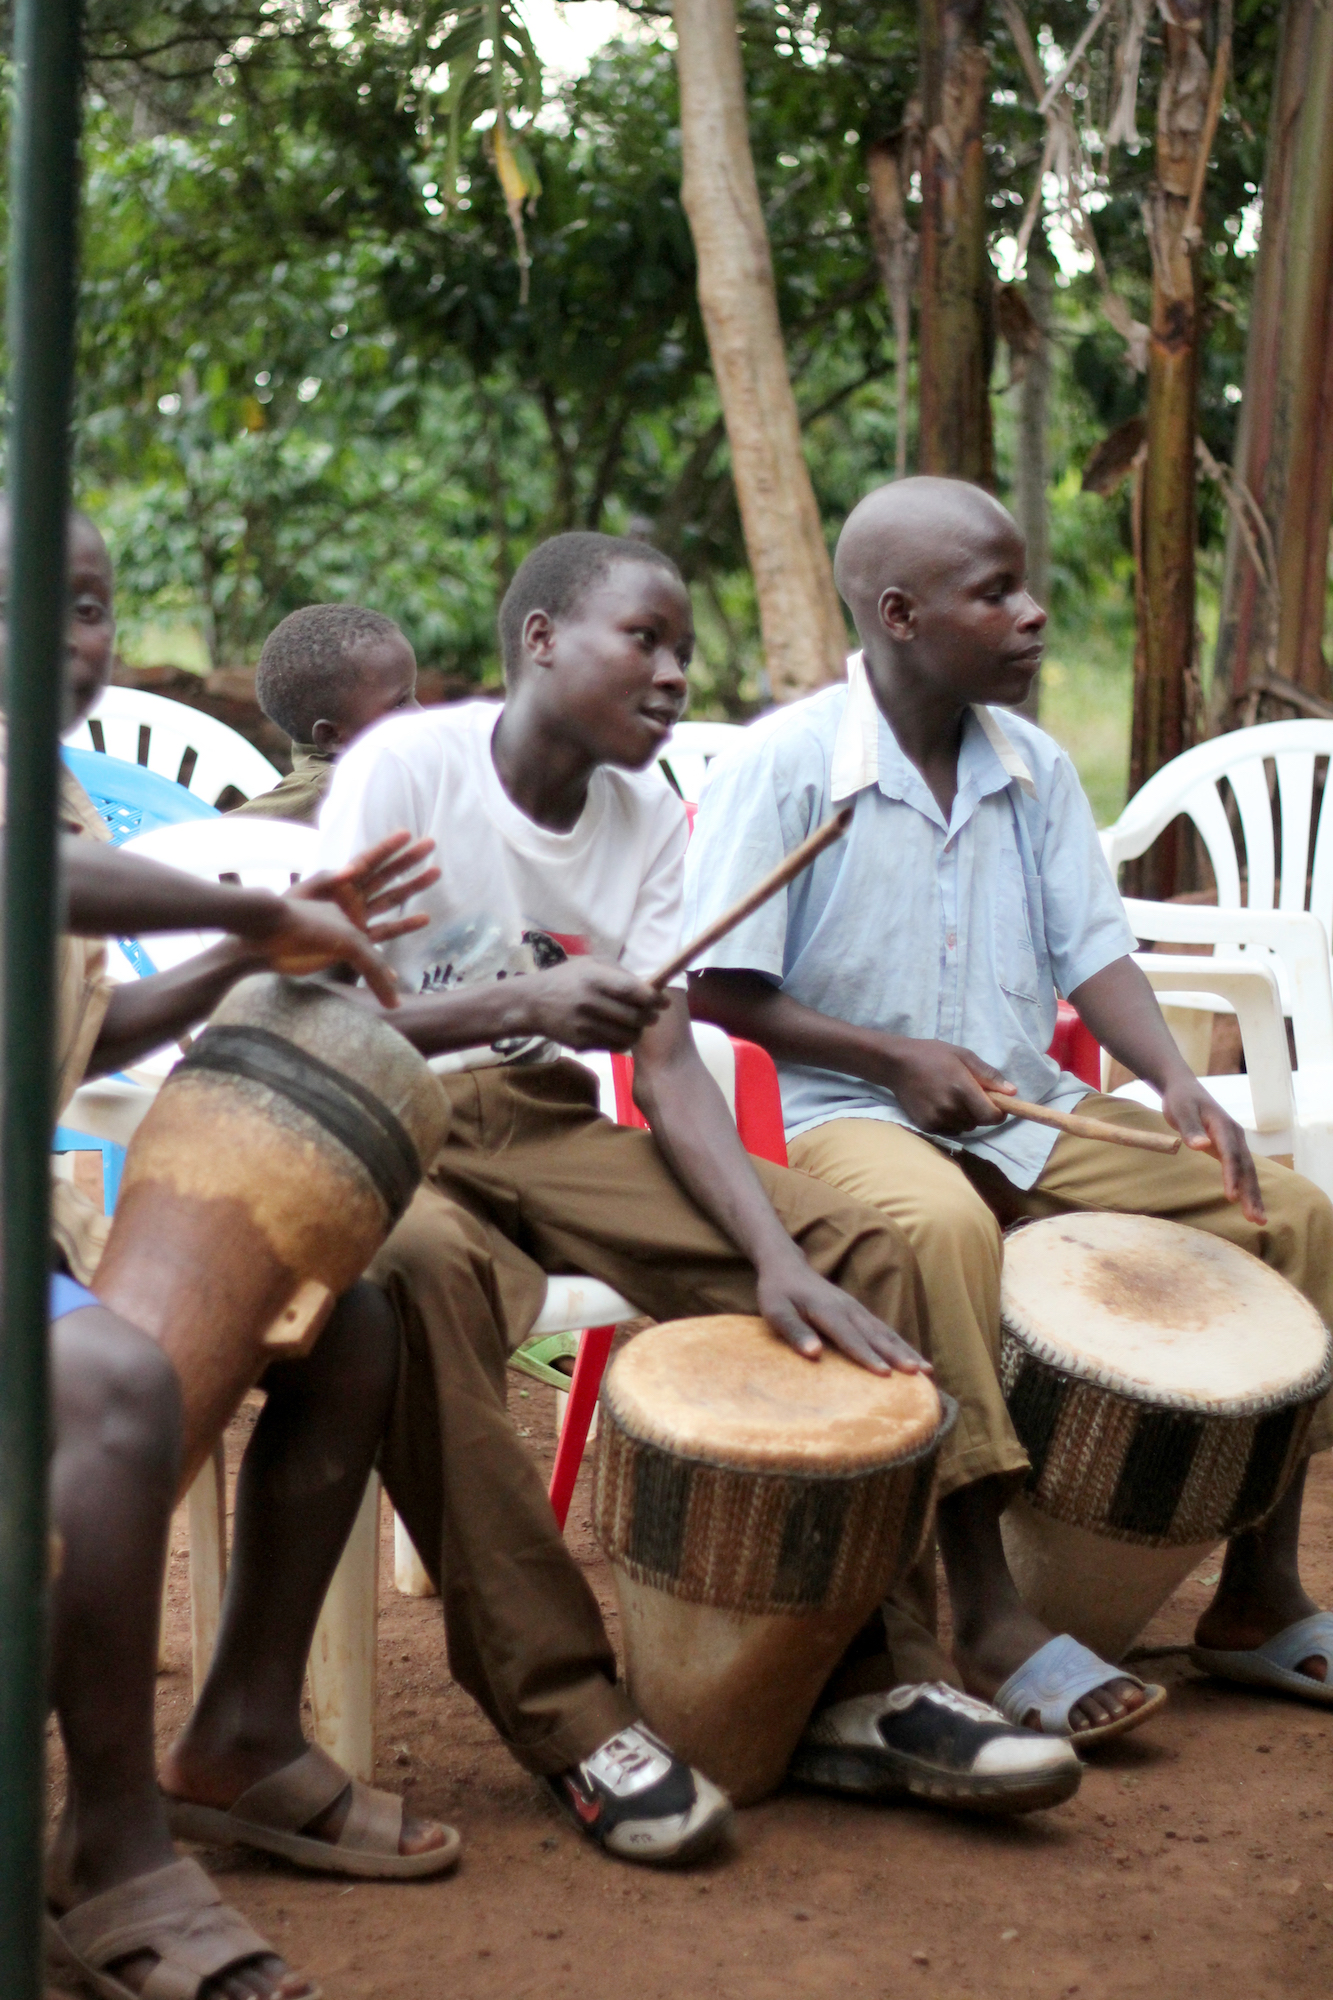 Two young men playing drums